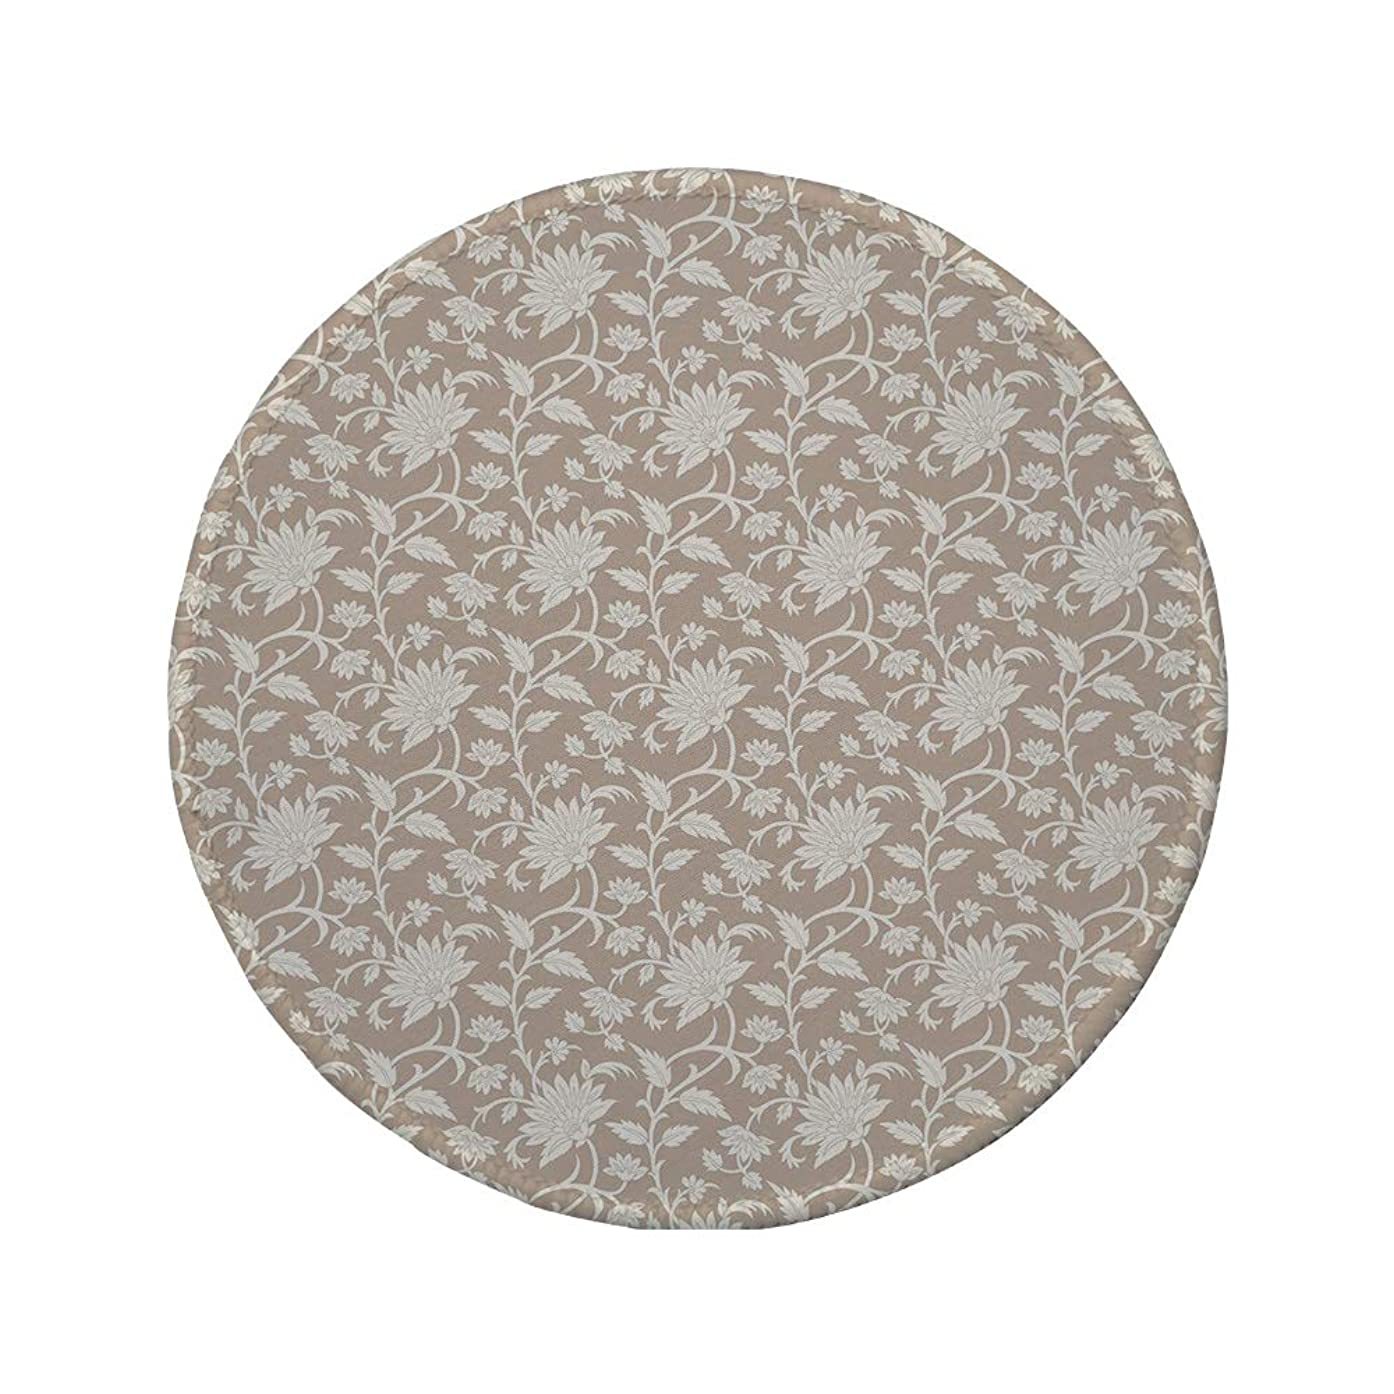 Non-Slip Rubber Round Mouse Pad,Floral,Floral Arrangement with Monochrome Design Natural Elements Abstract Pattern Leaves,Tan Cream,11.8